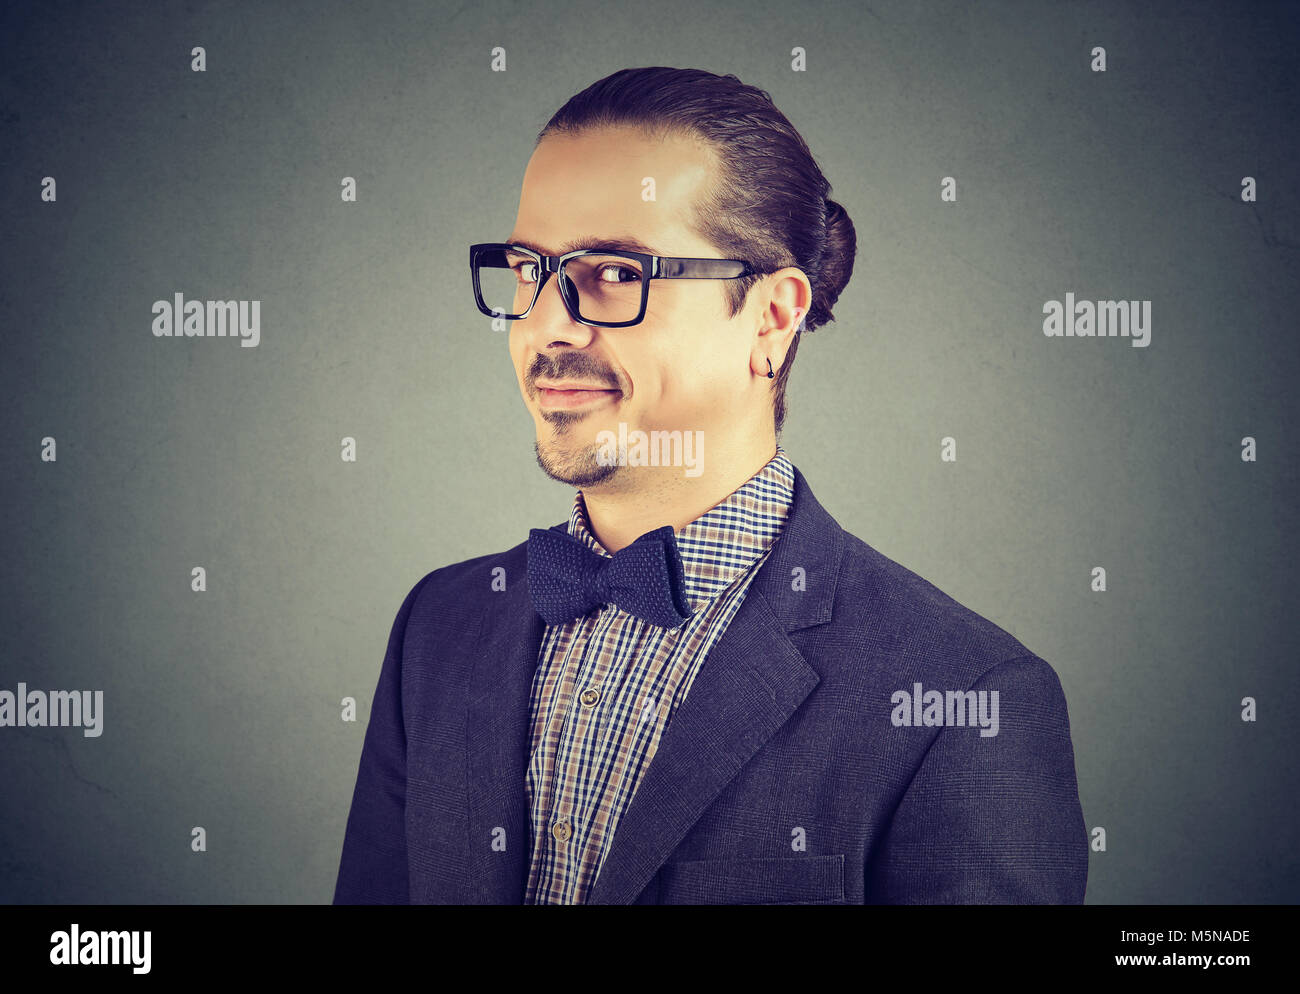 Young formal man in suit and glasses looking cannily at camera being liar. - Stock Image